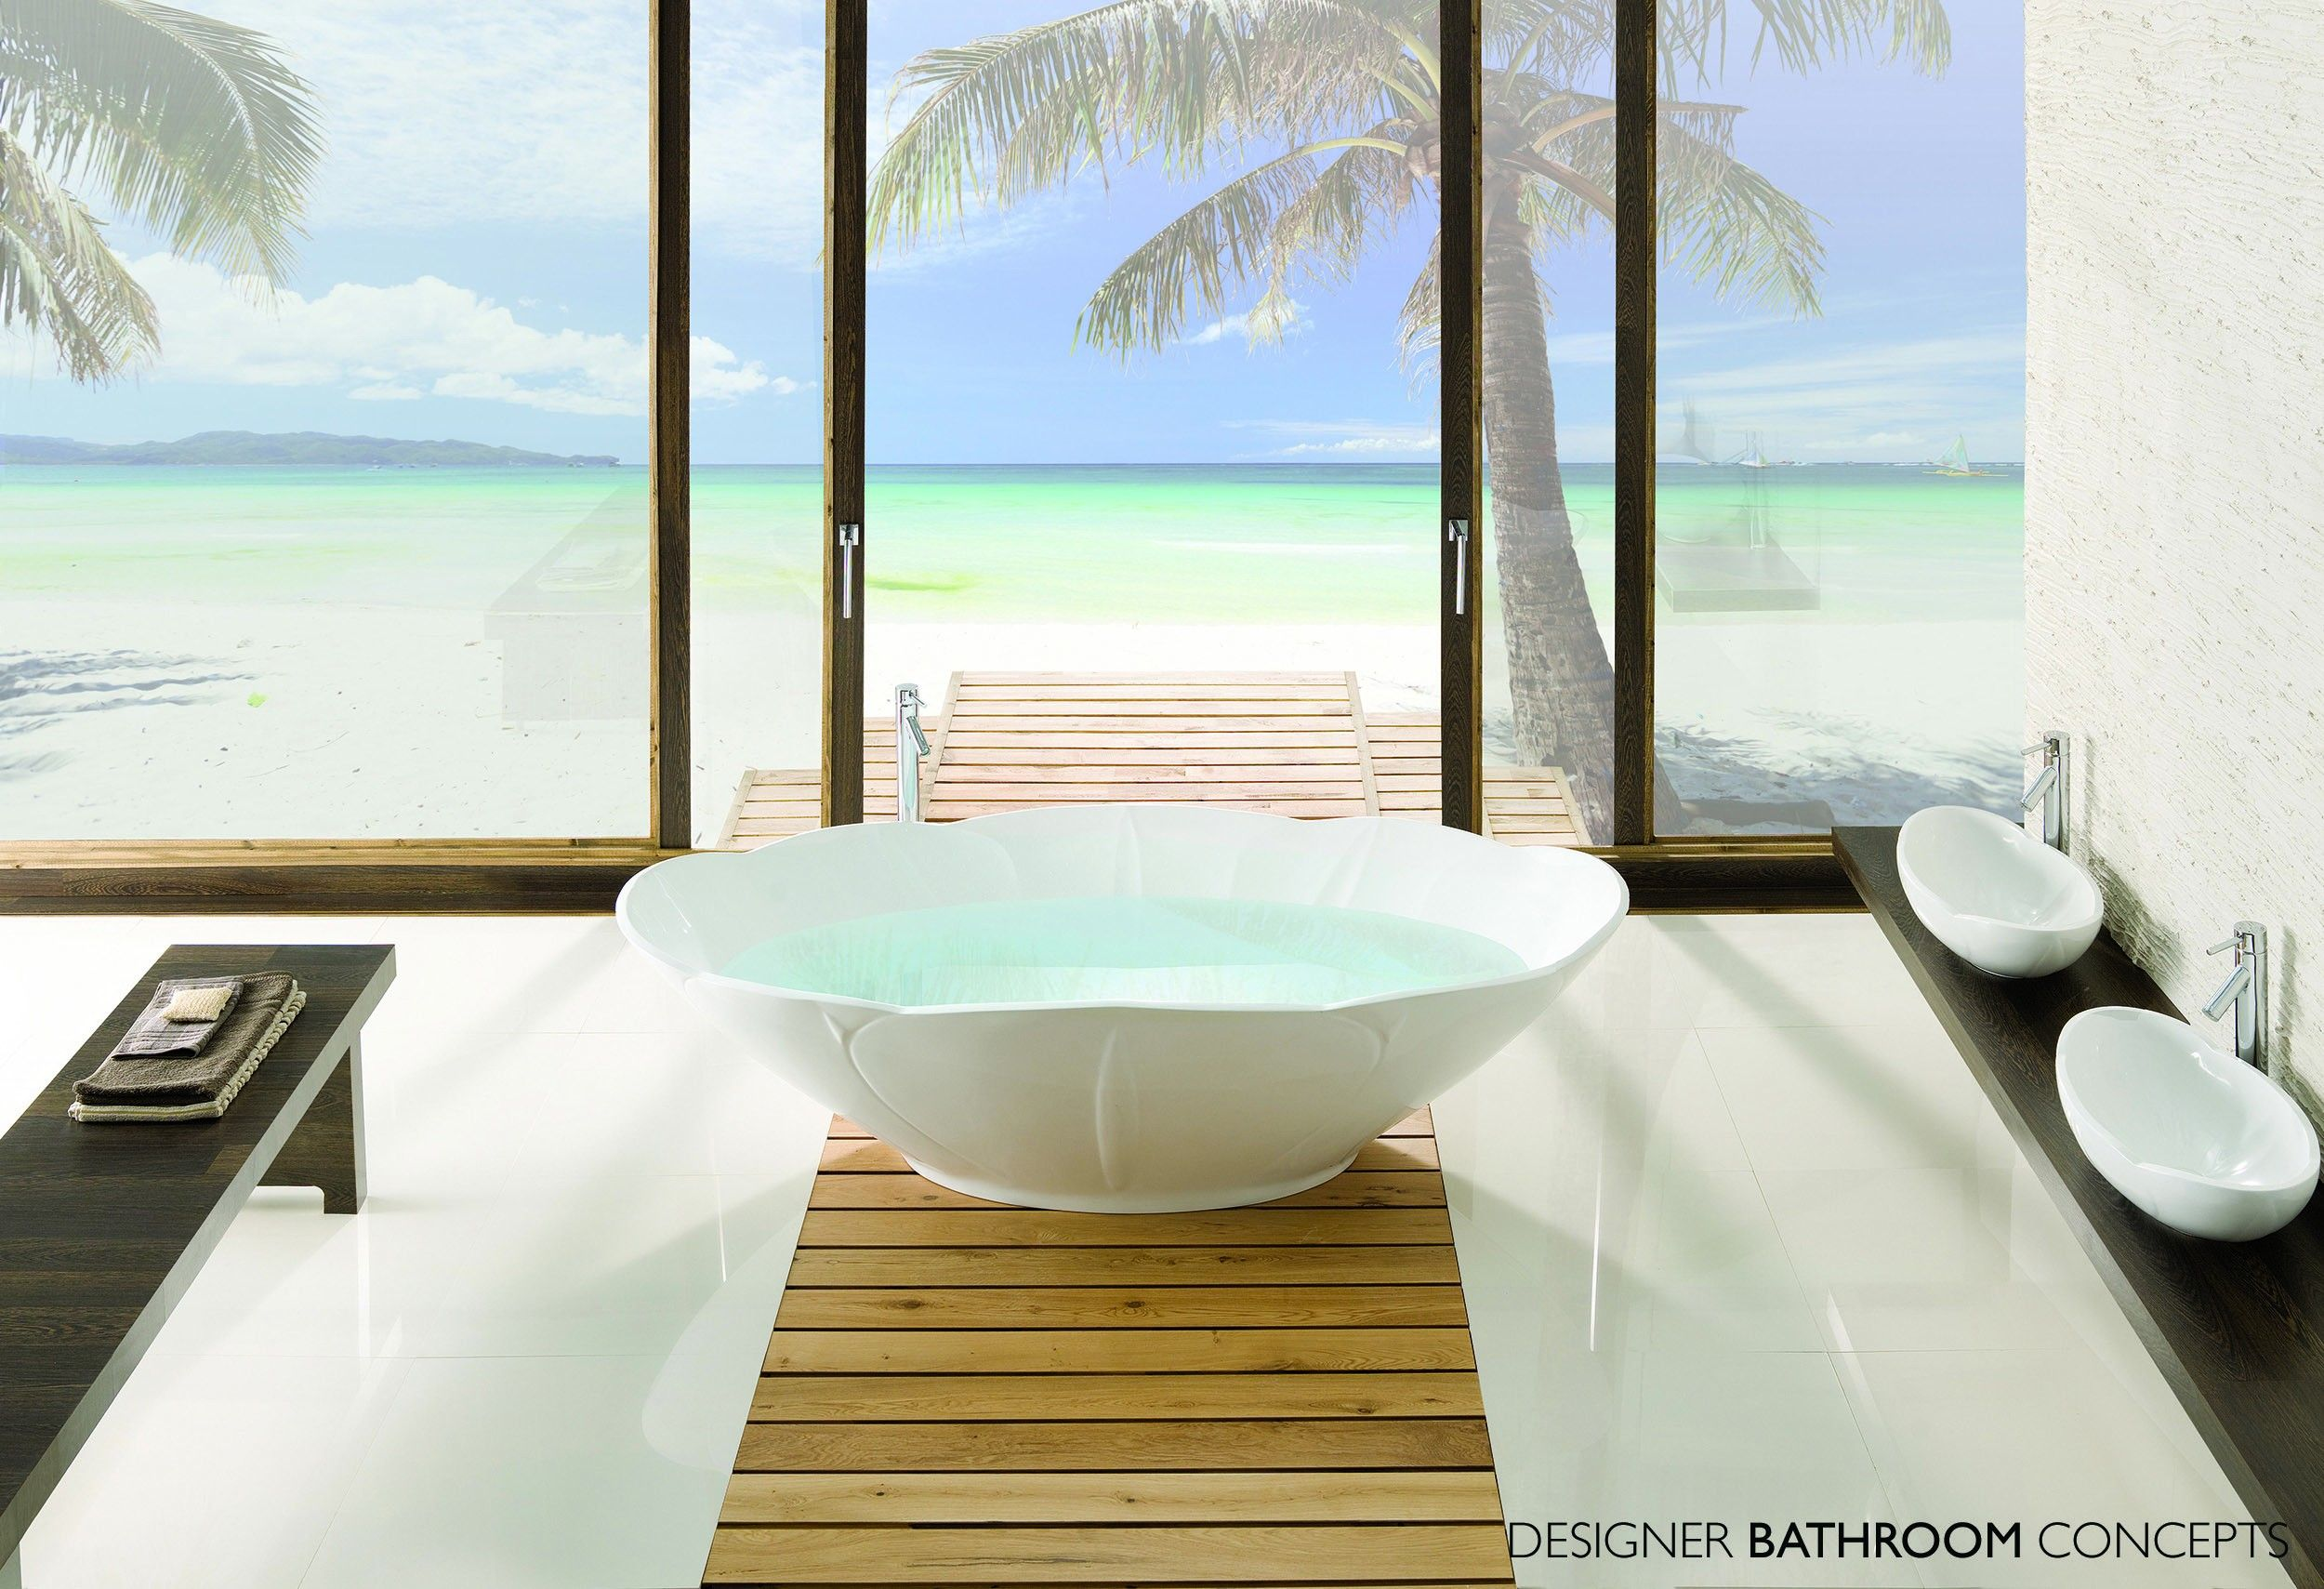 Visit Designer Bathroom Concepts for the ultimate